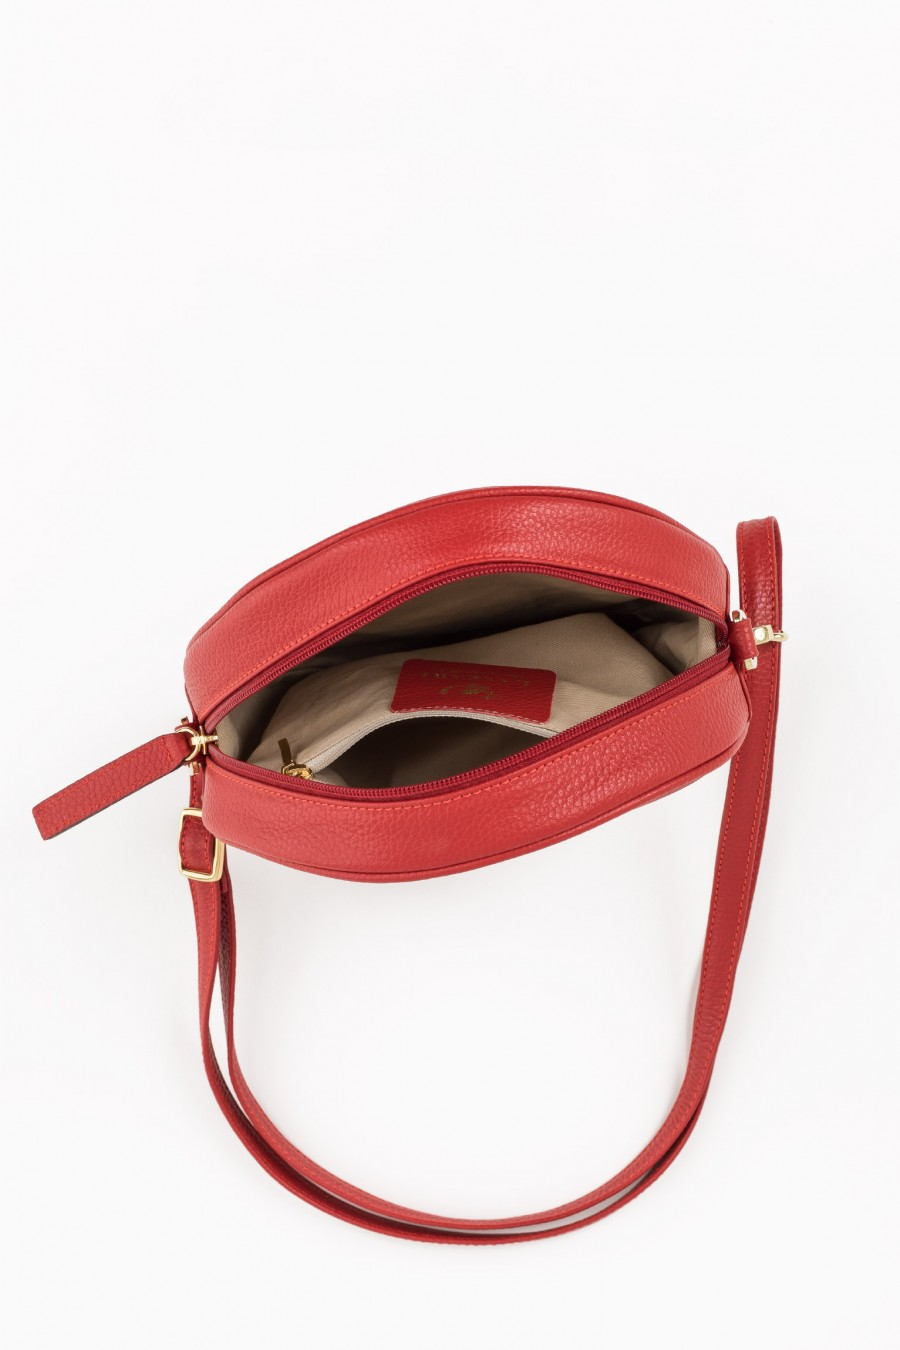 Red lined bag